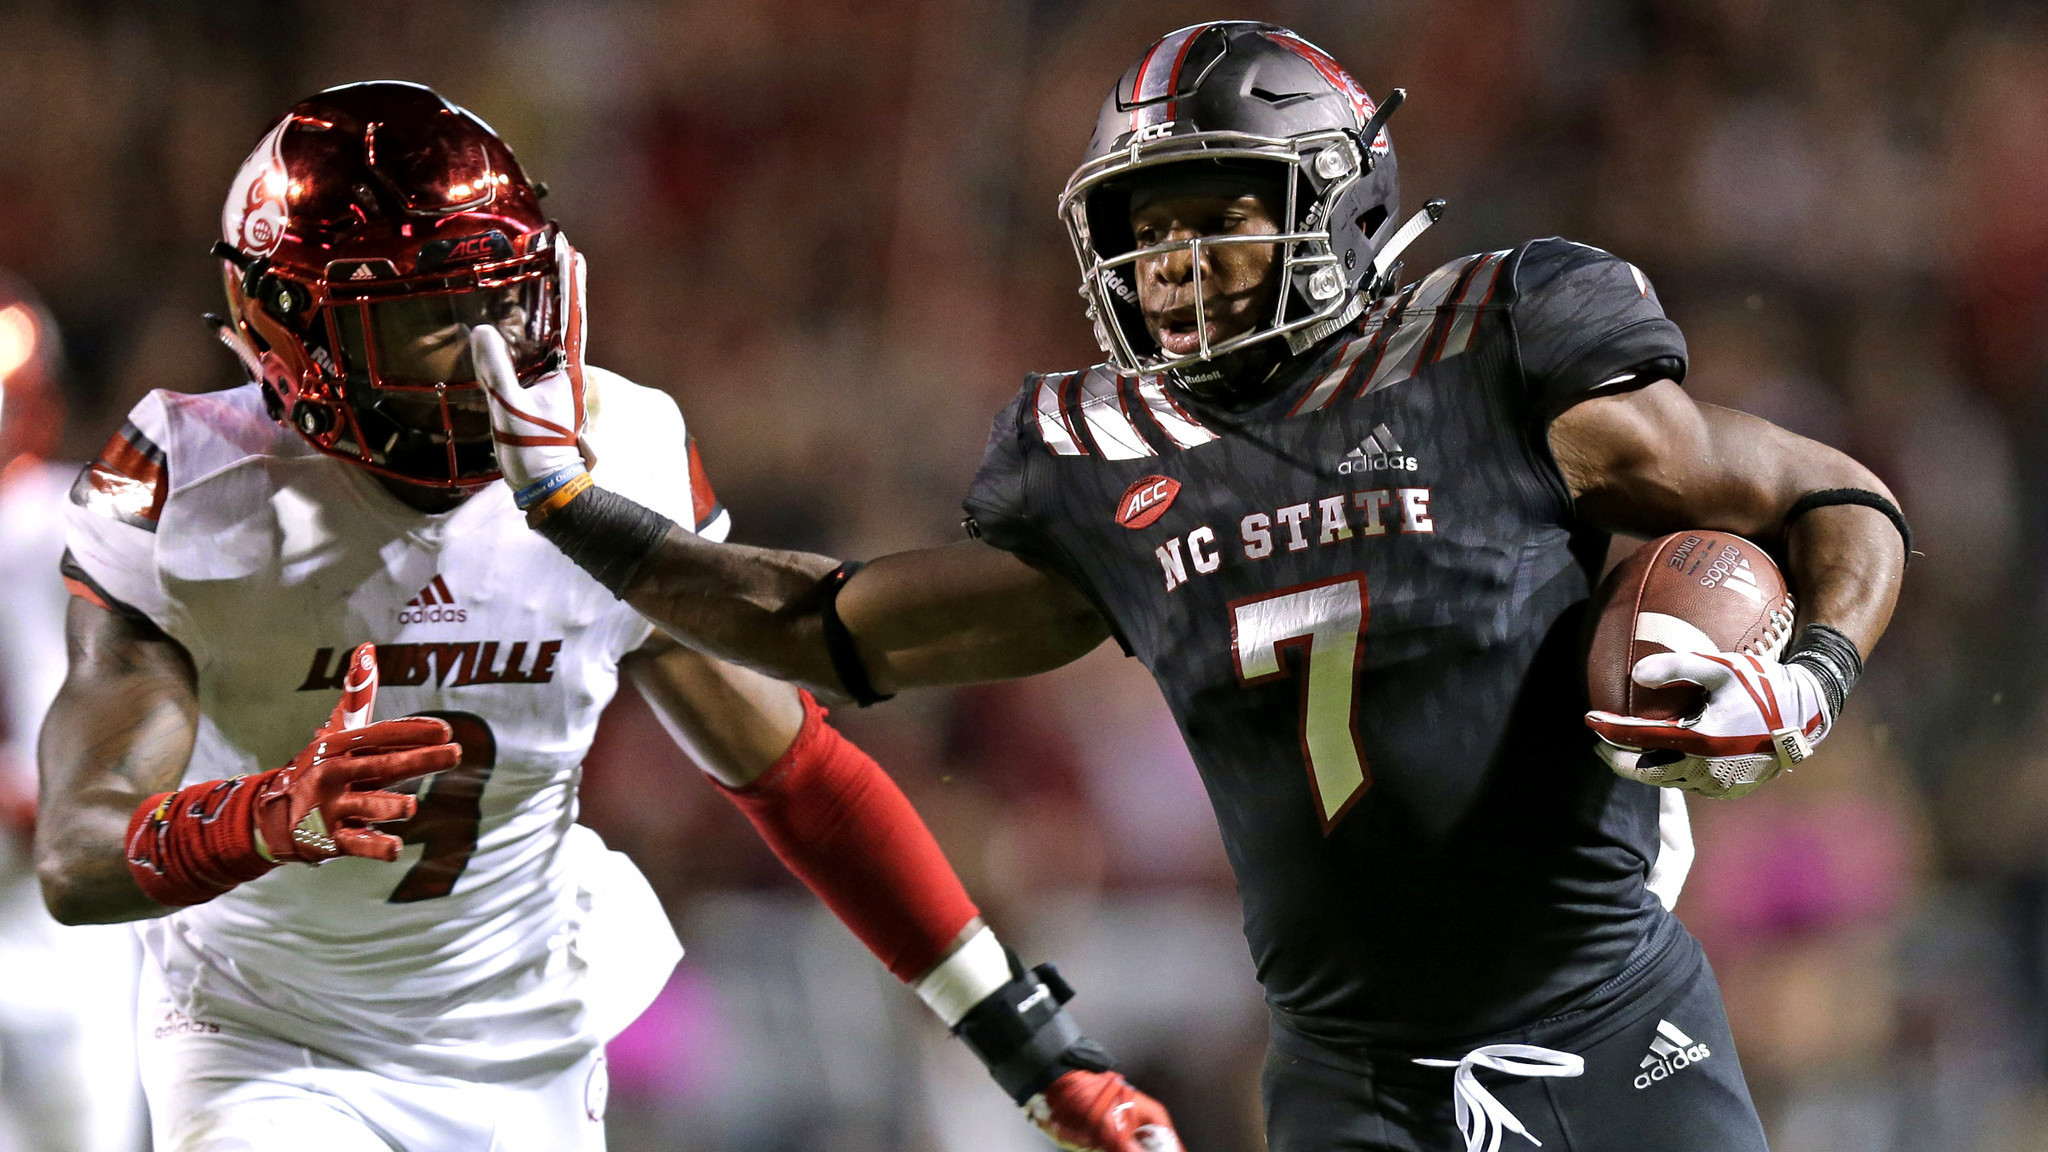 wtop.com College football  No. 24 N.C. State topples No. 17 Louisville ecd7aab6f77e